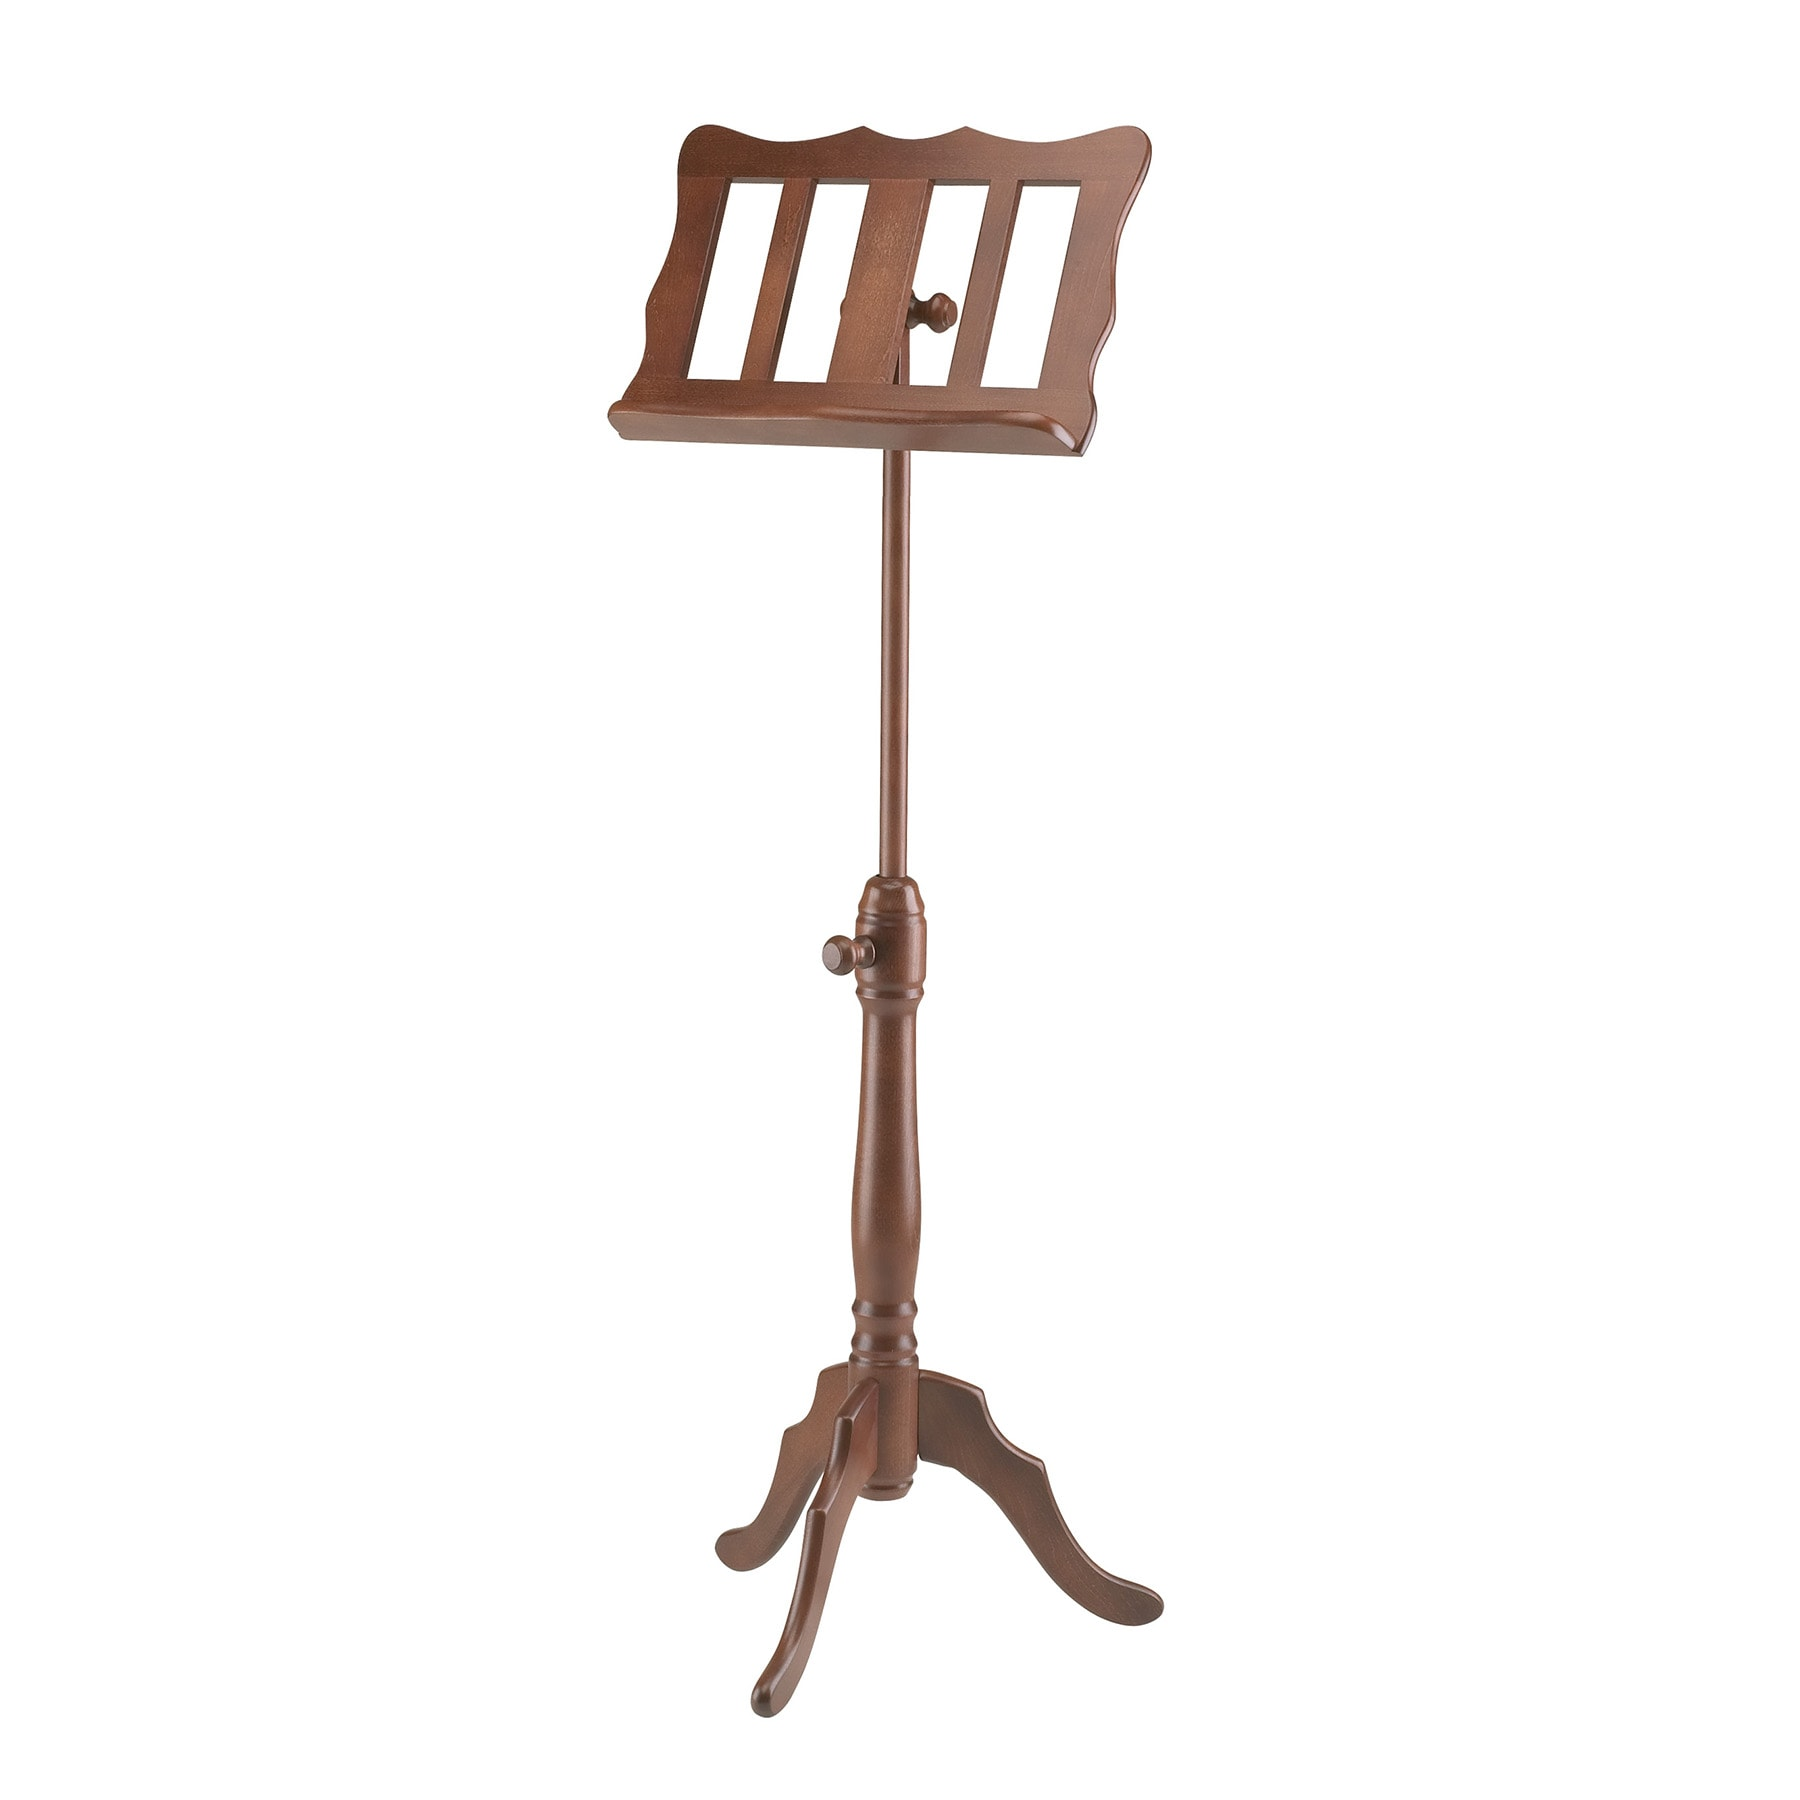 KM117 - Wooden music stand